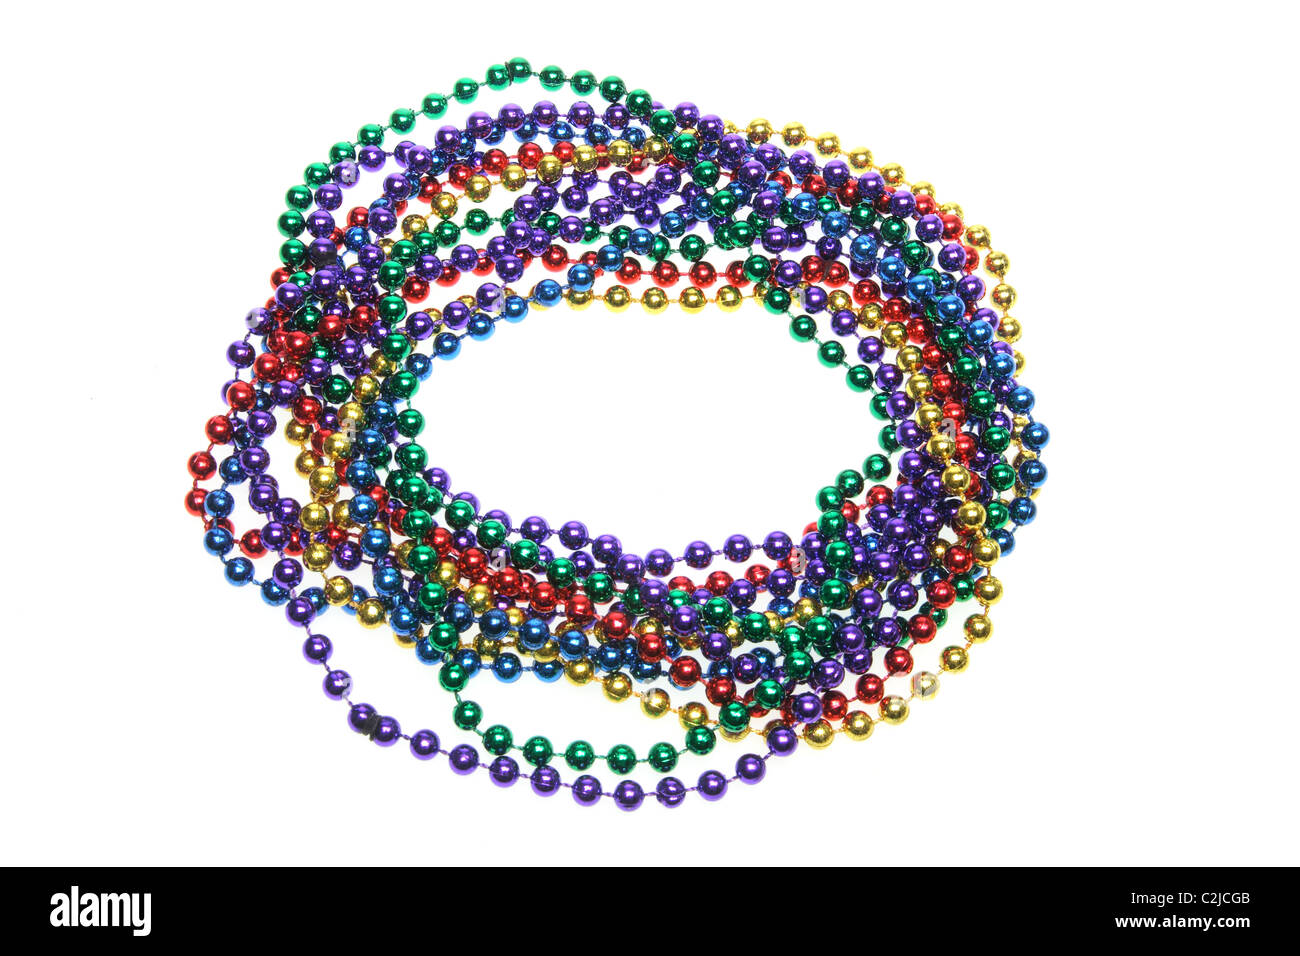 Strings of Color Beads - Stock Image